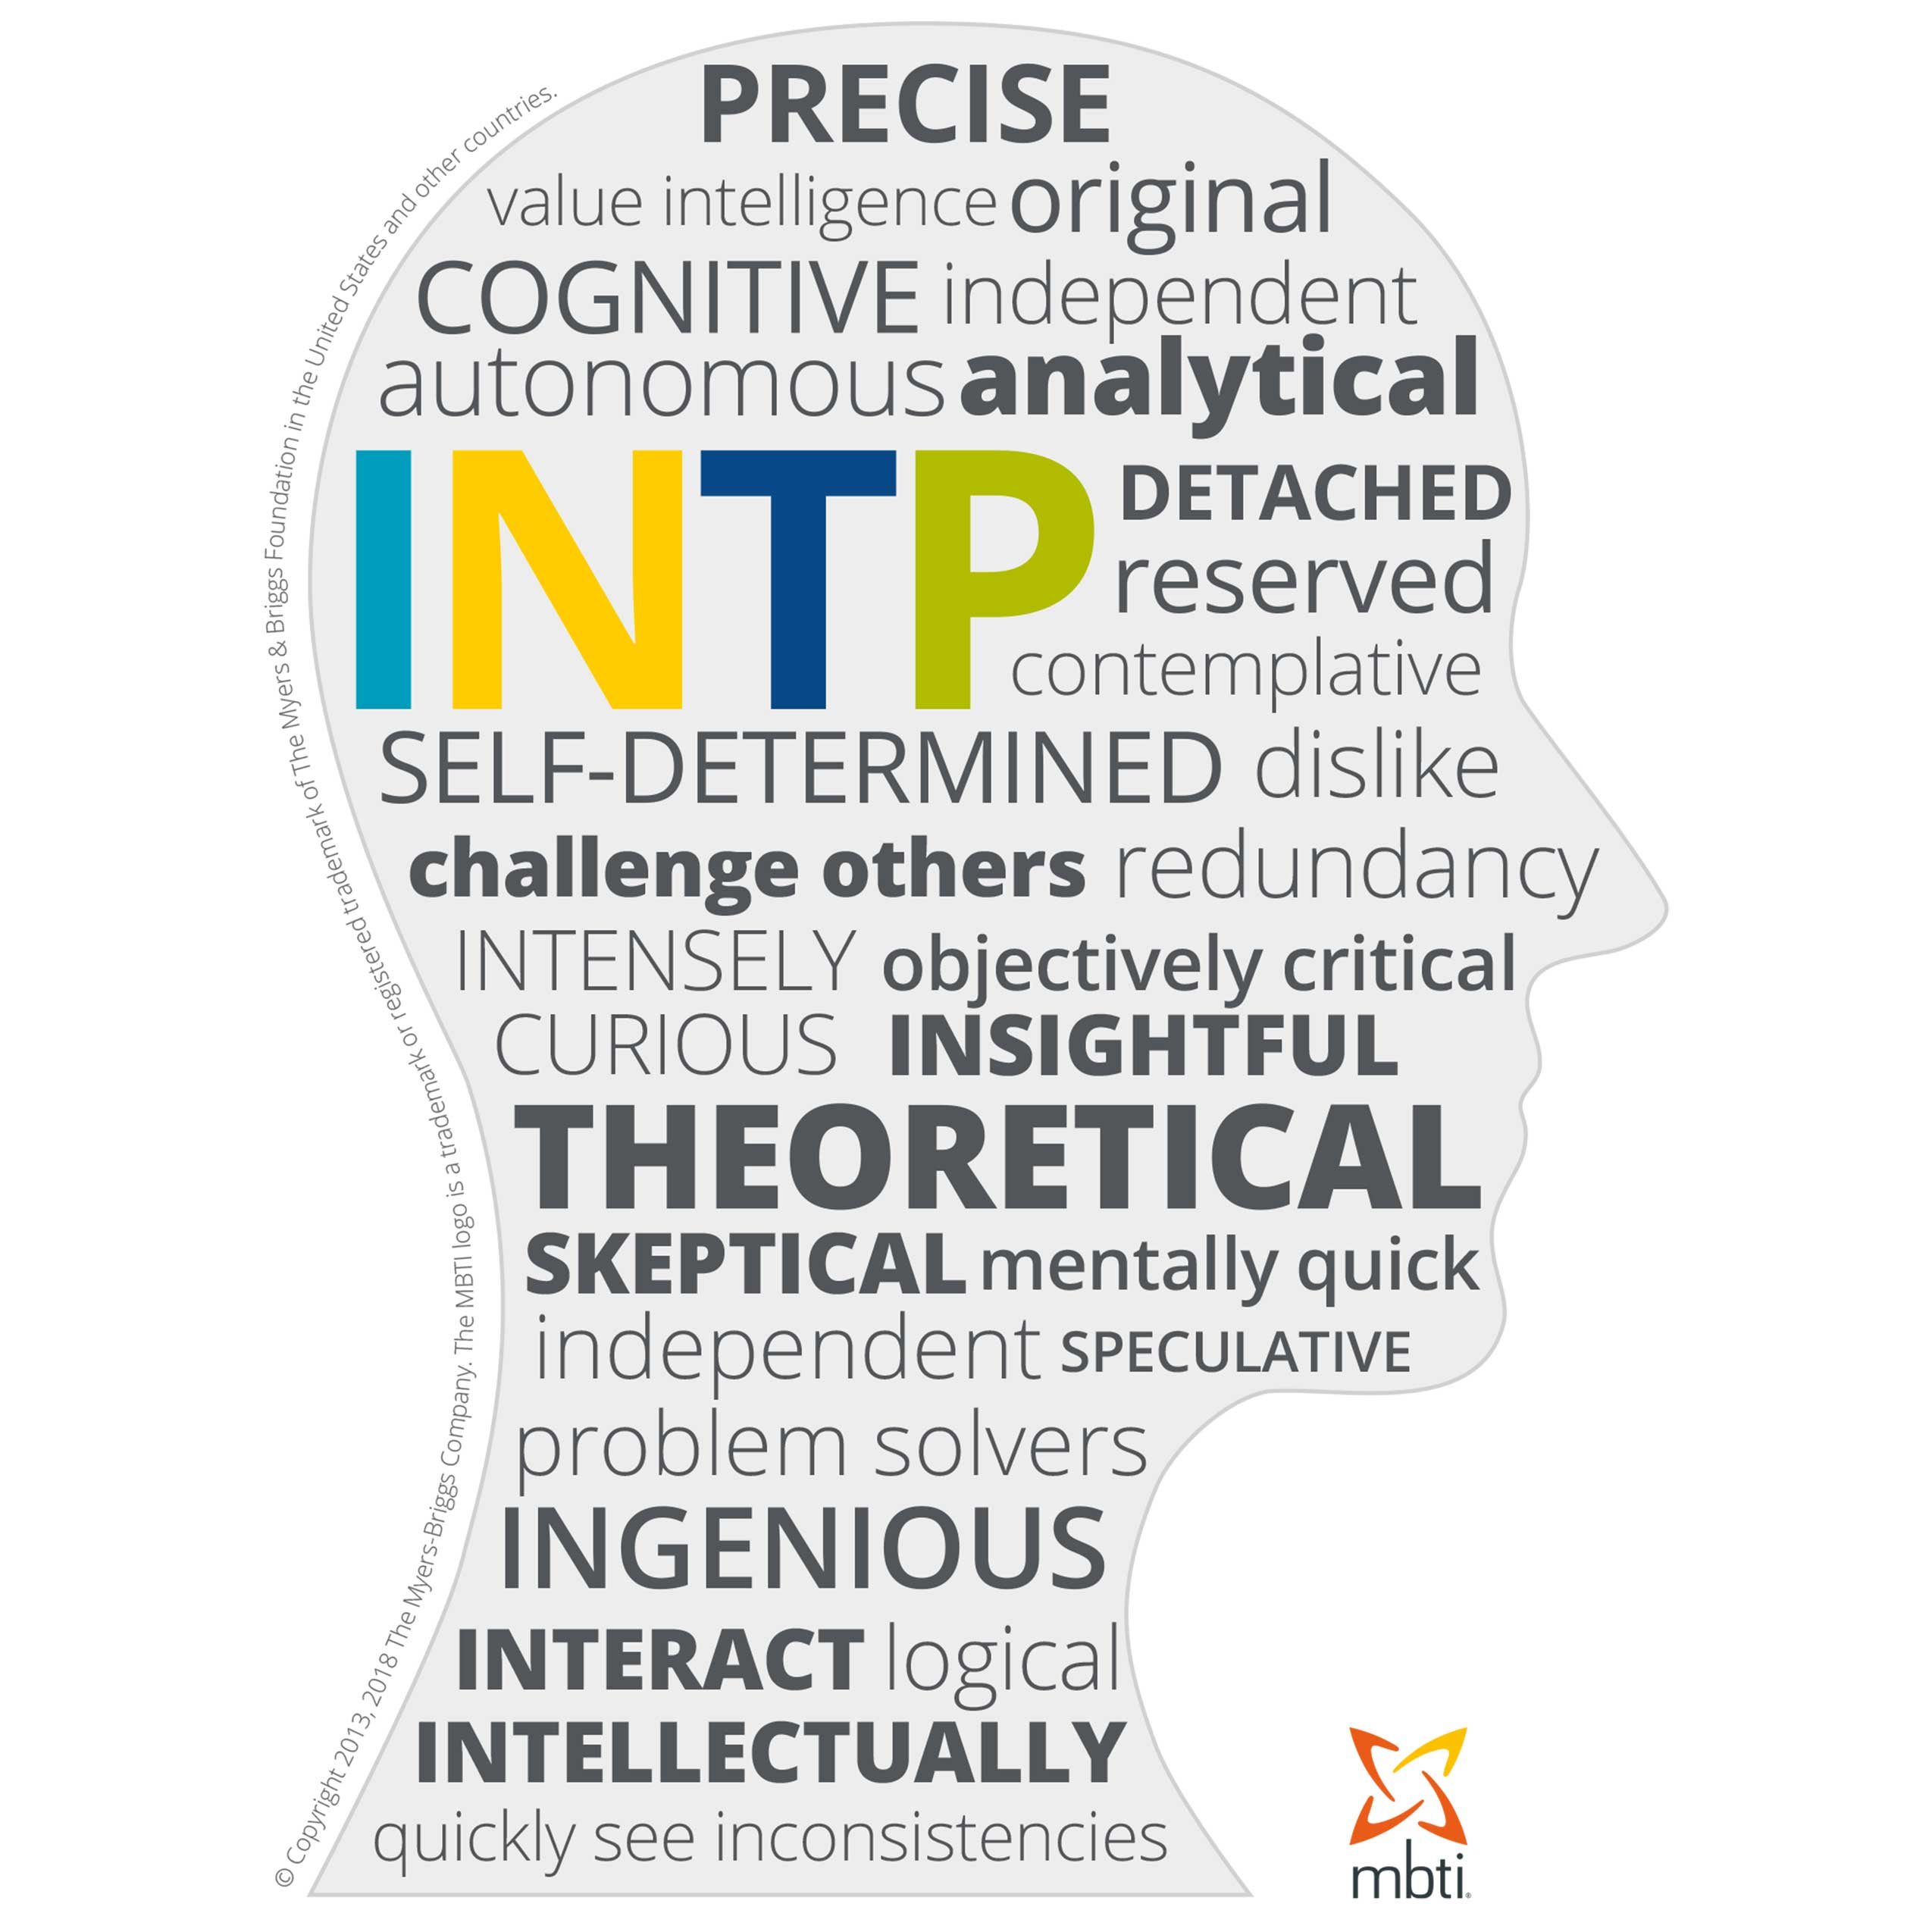 Typical characteristics of an INTP